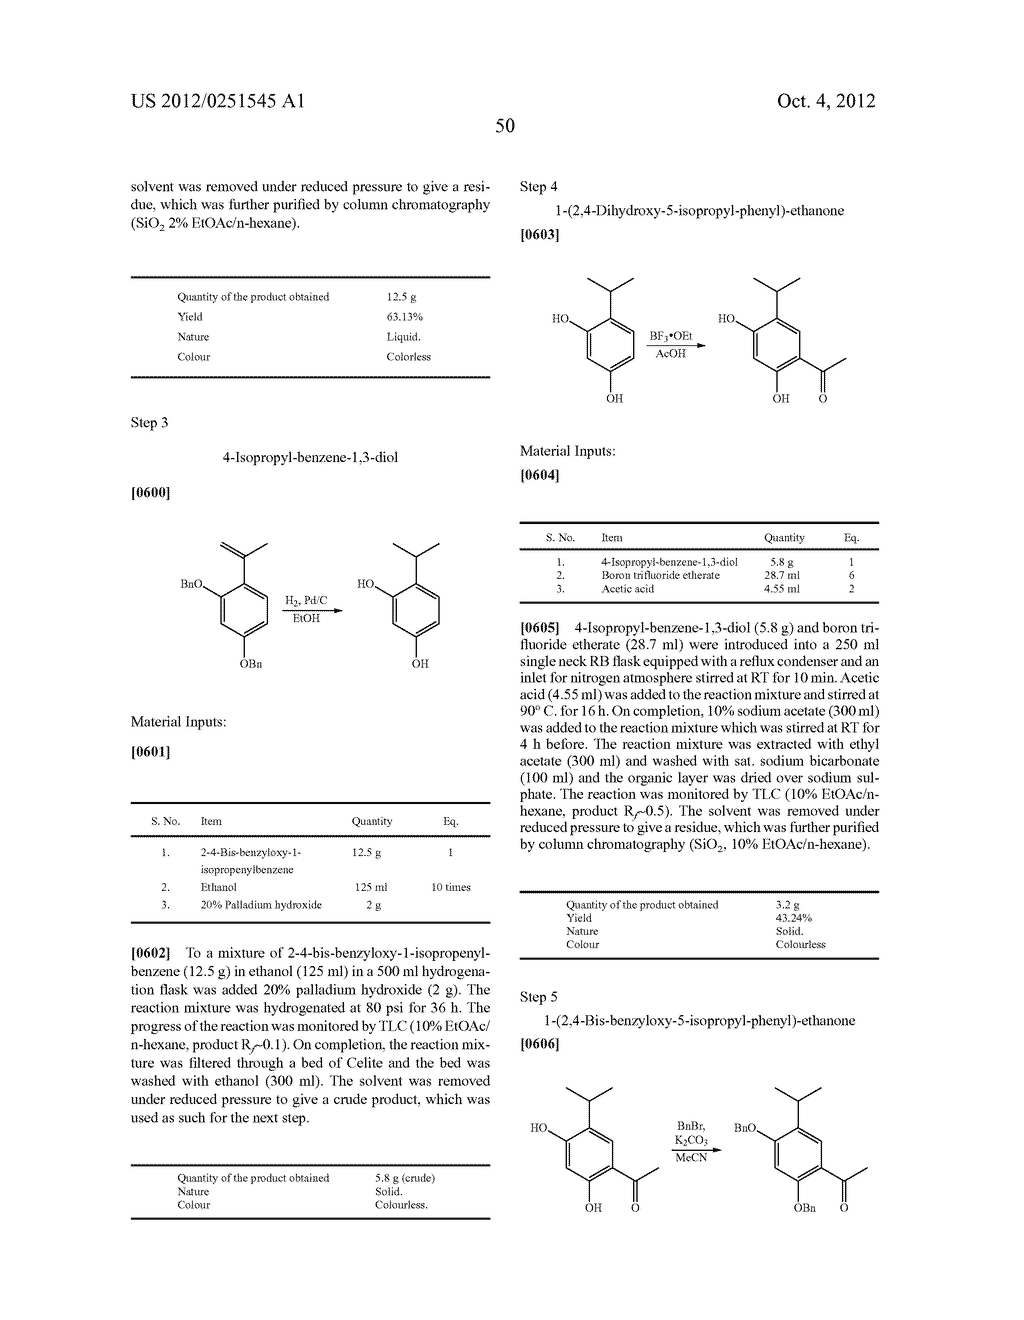 Therapeutic Combinations Of Hydroxybenzamide Derivatives As Inhibitors Of     HSP90 - diagram, schematic, and image 51